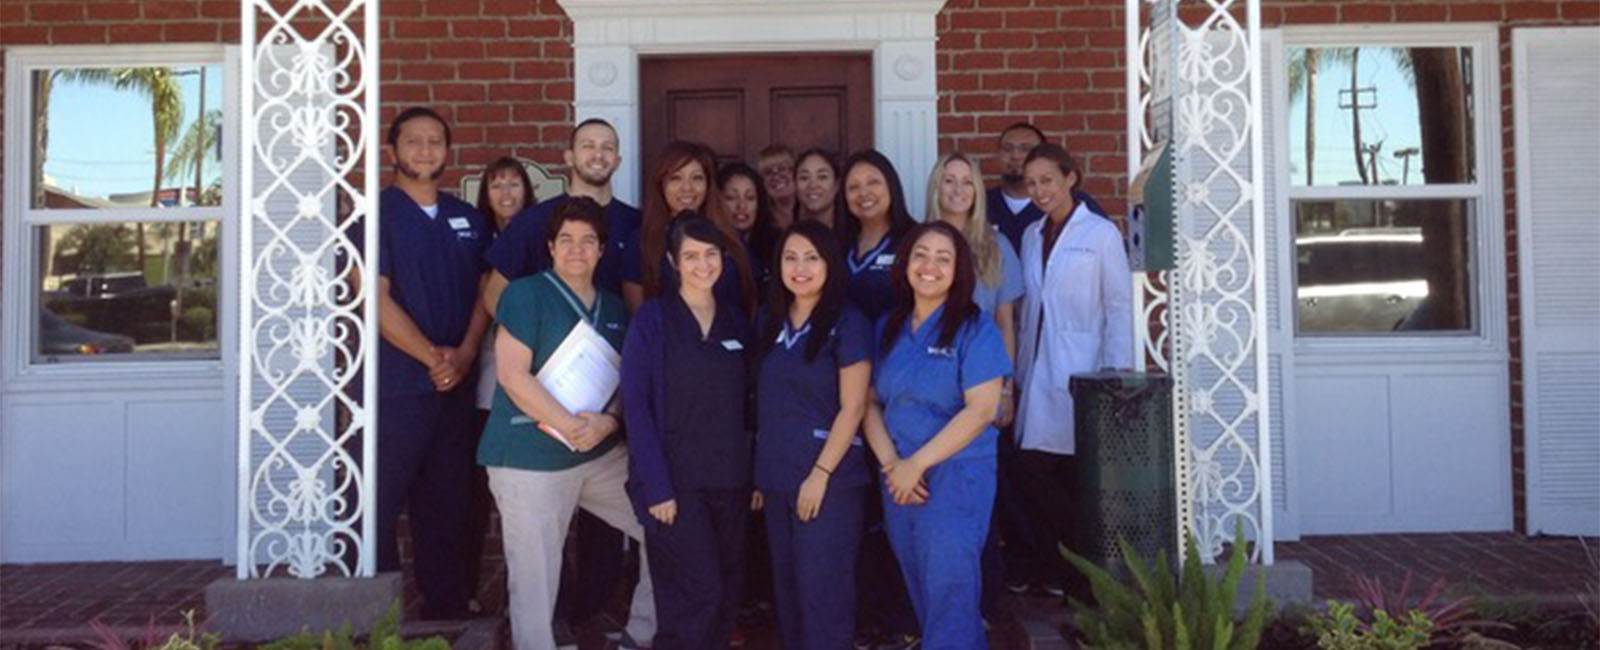 Homepage Team Picture of VCA Brentwood Animal Hospital